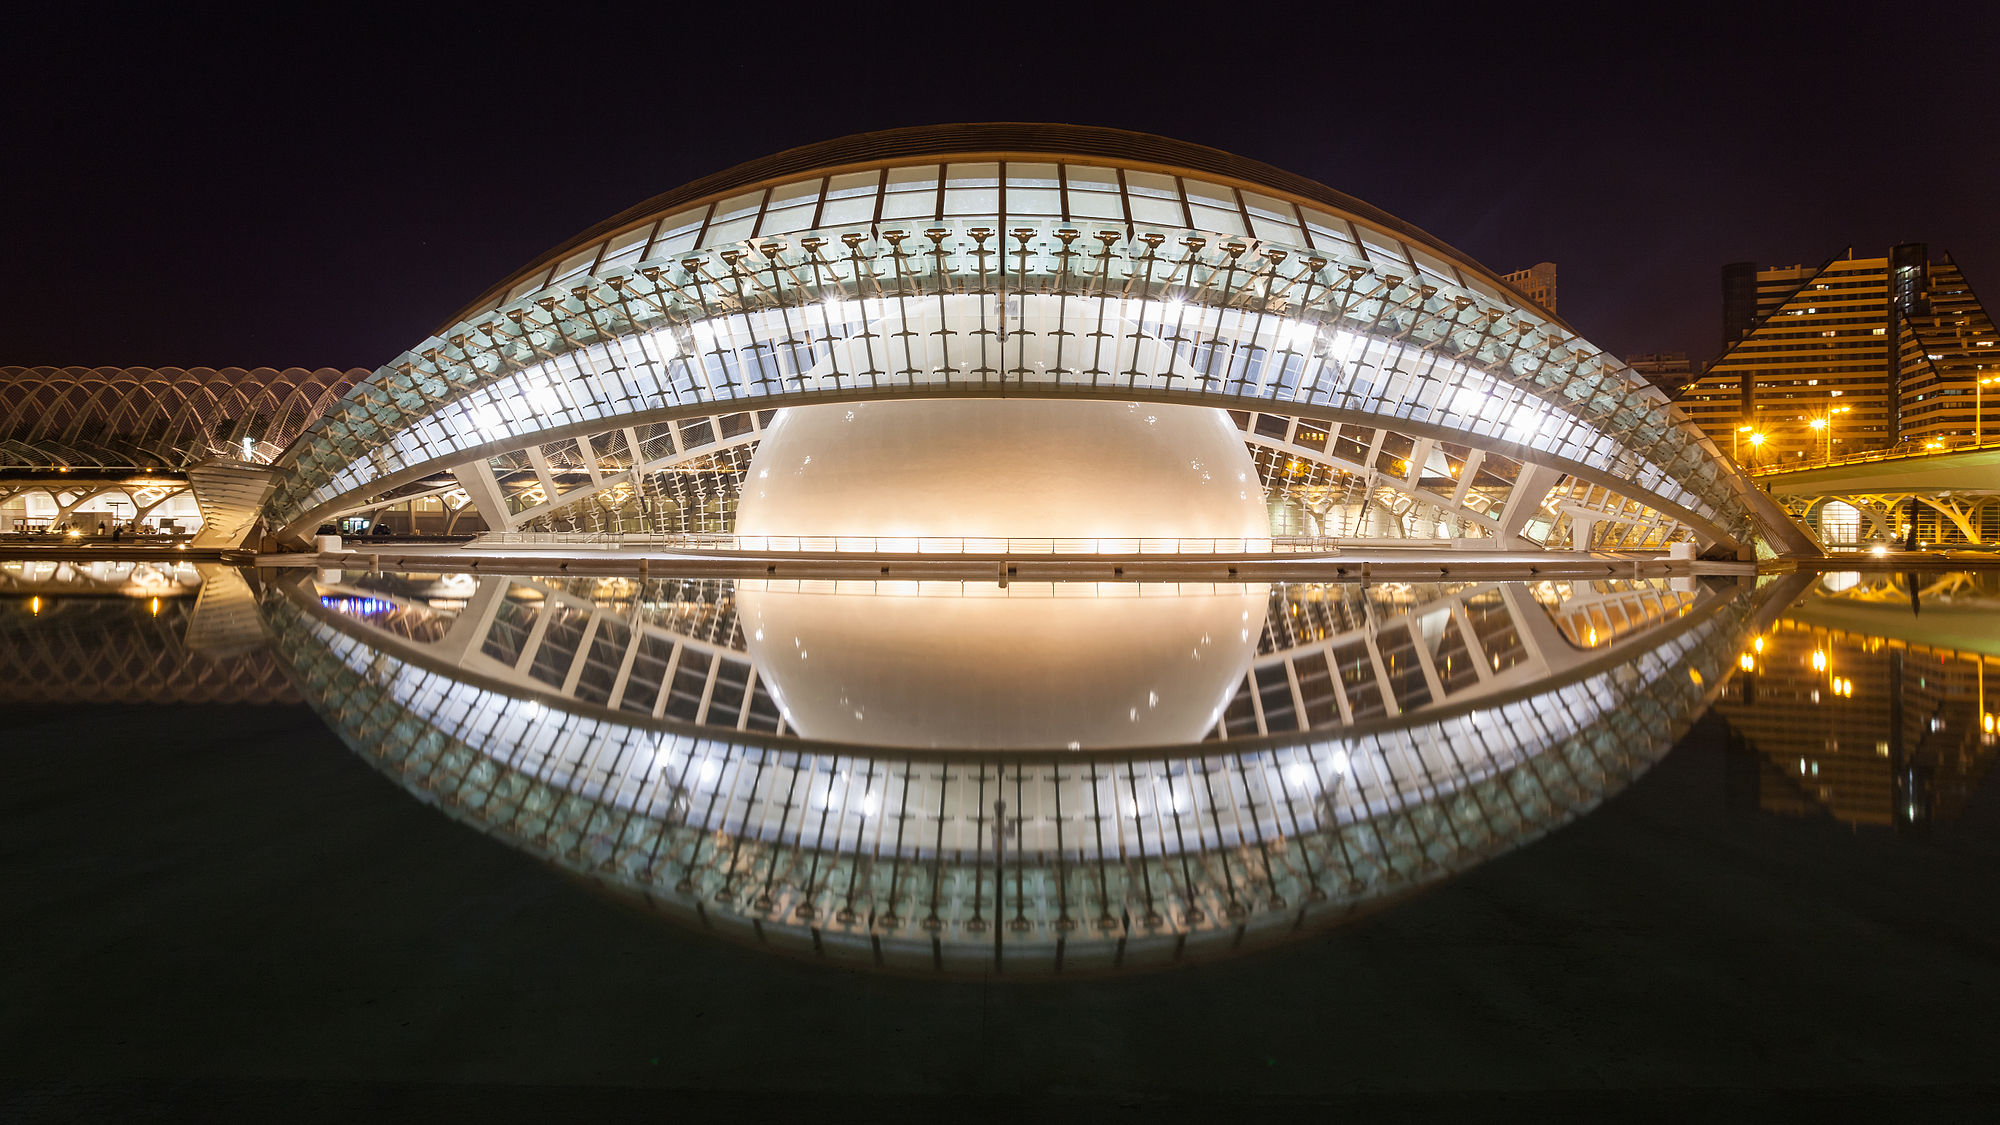 The Hemispheric, City of Arts and Sciences, Valencia, Spain.